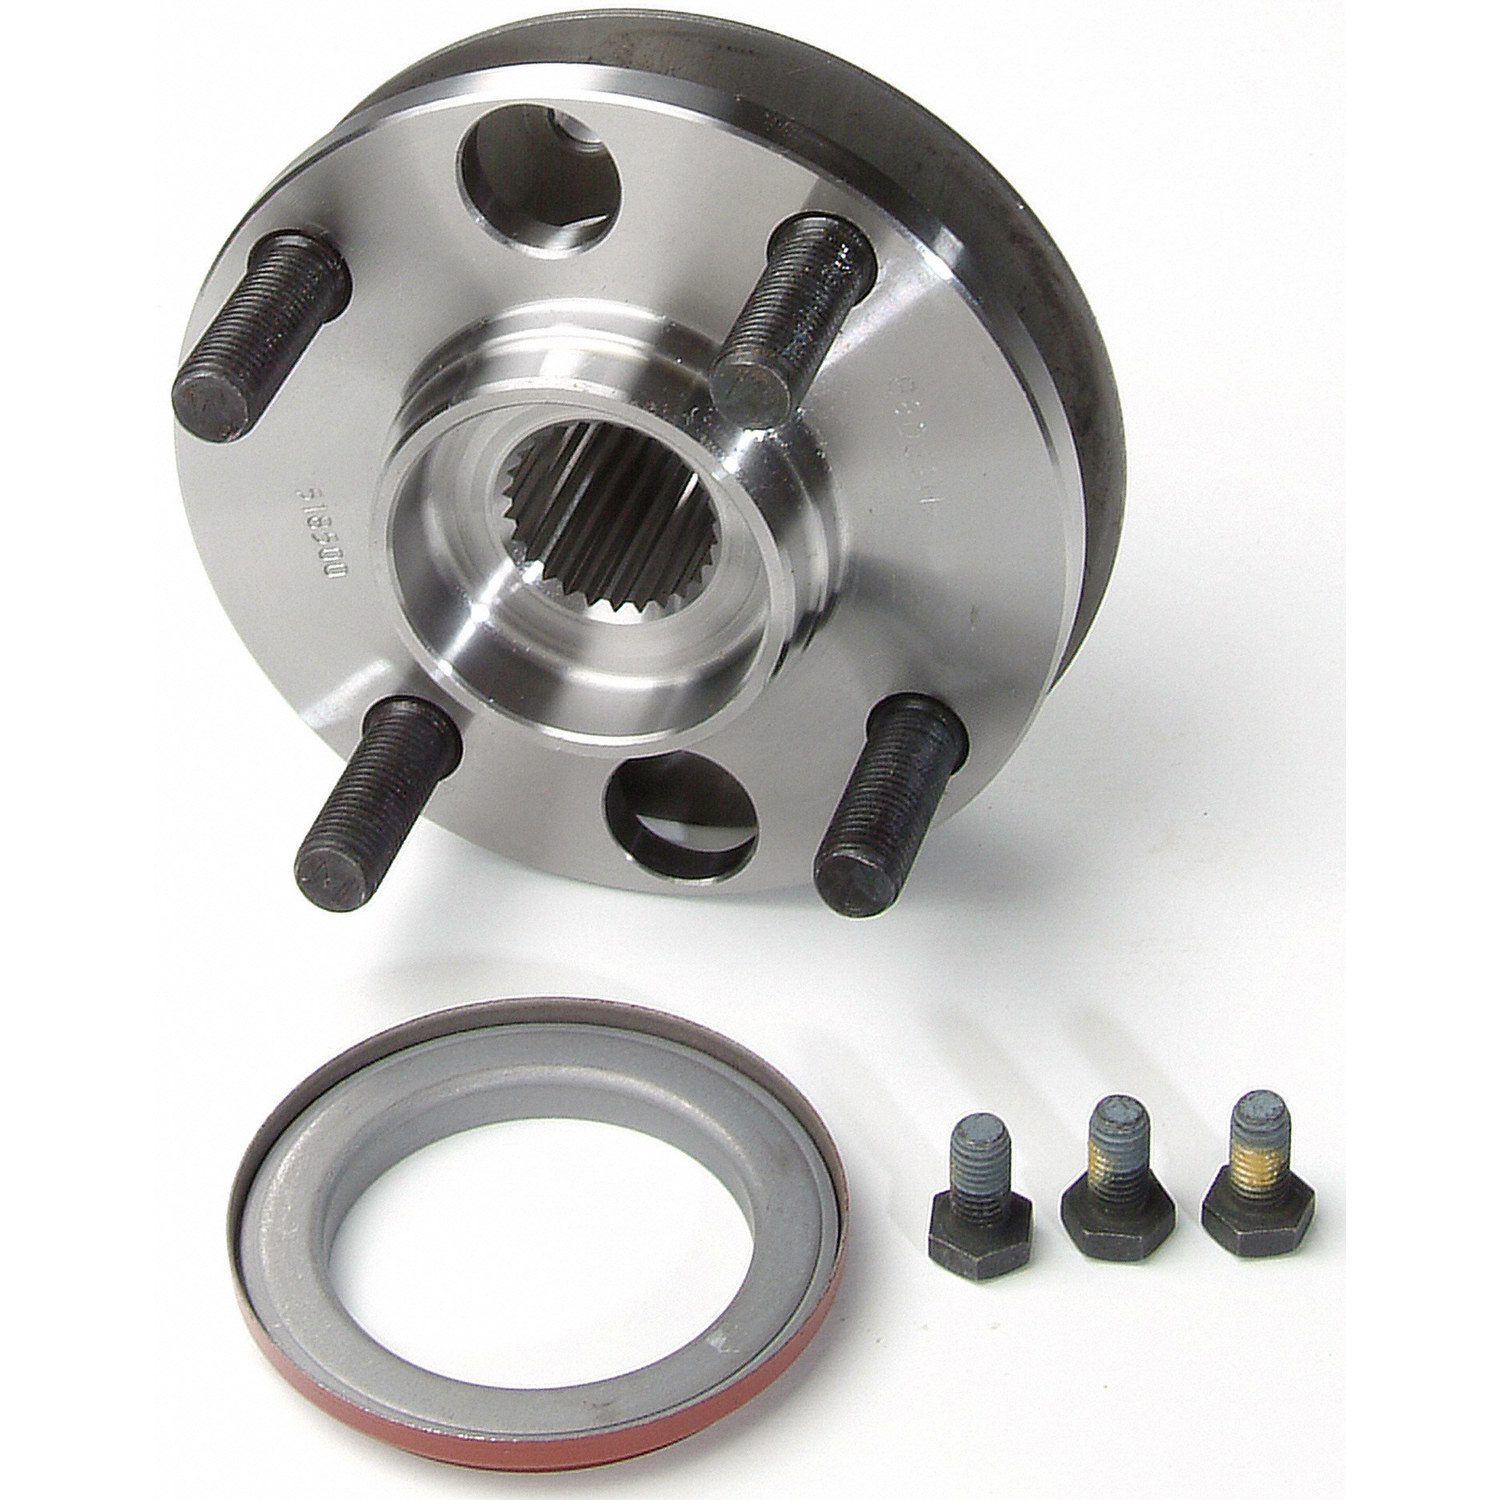 Wheel Hub Repair Kit